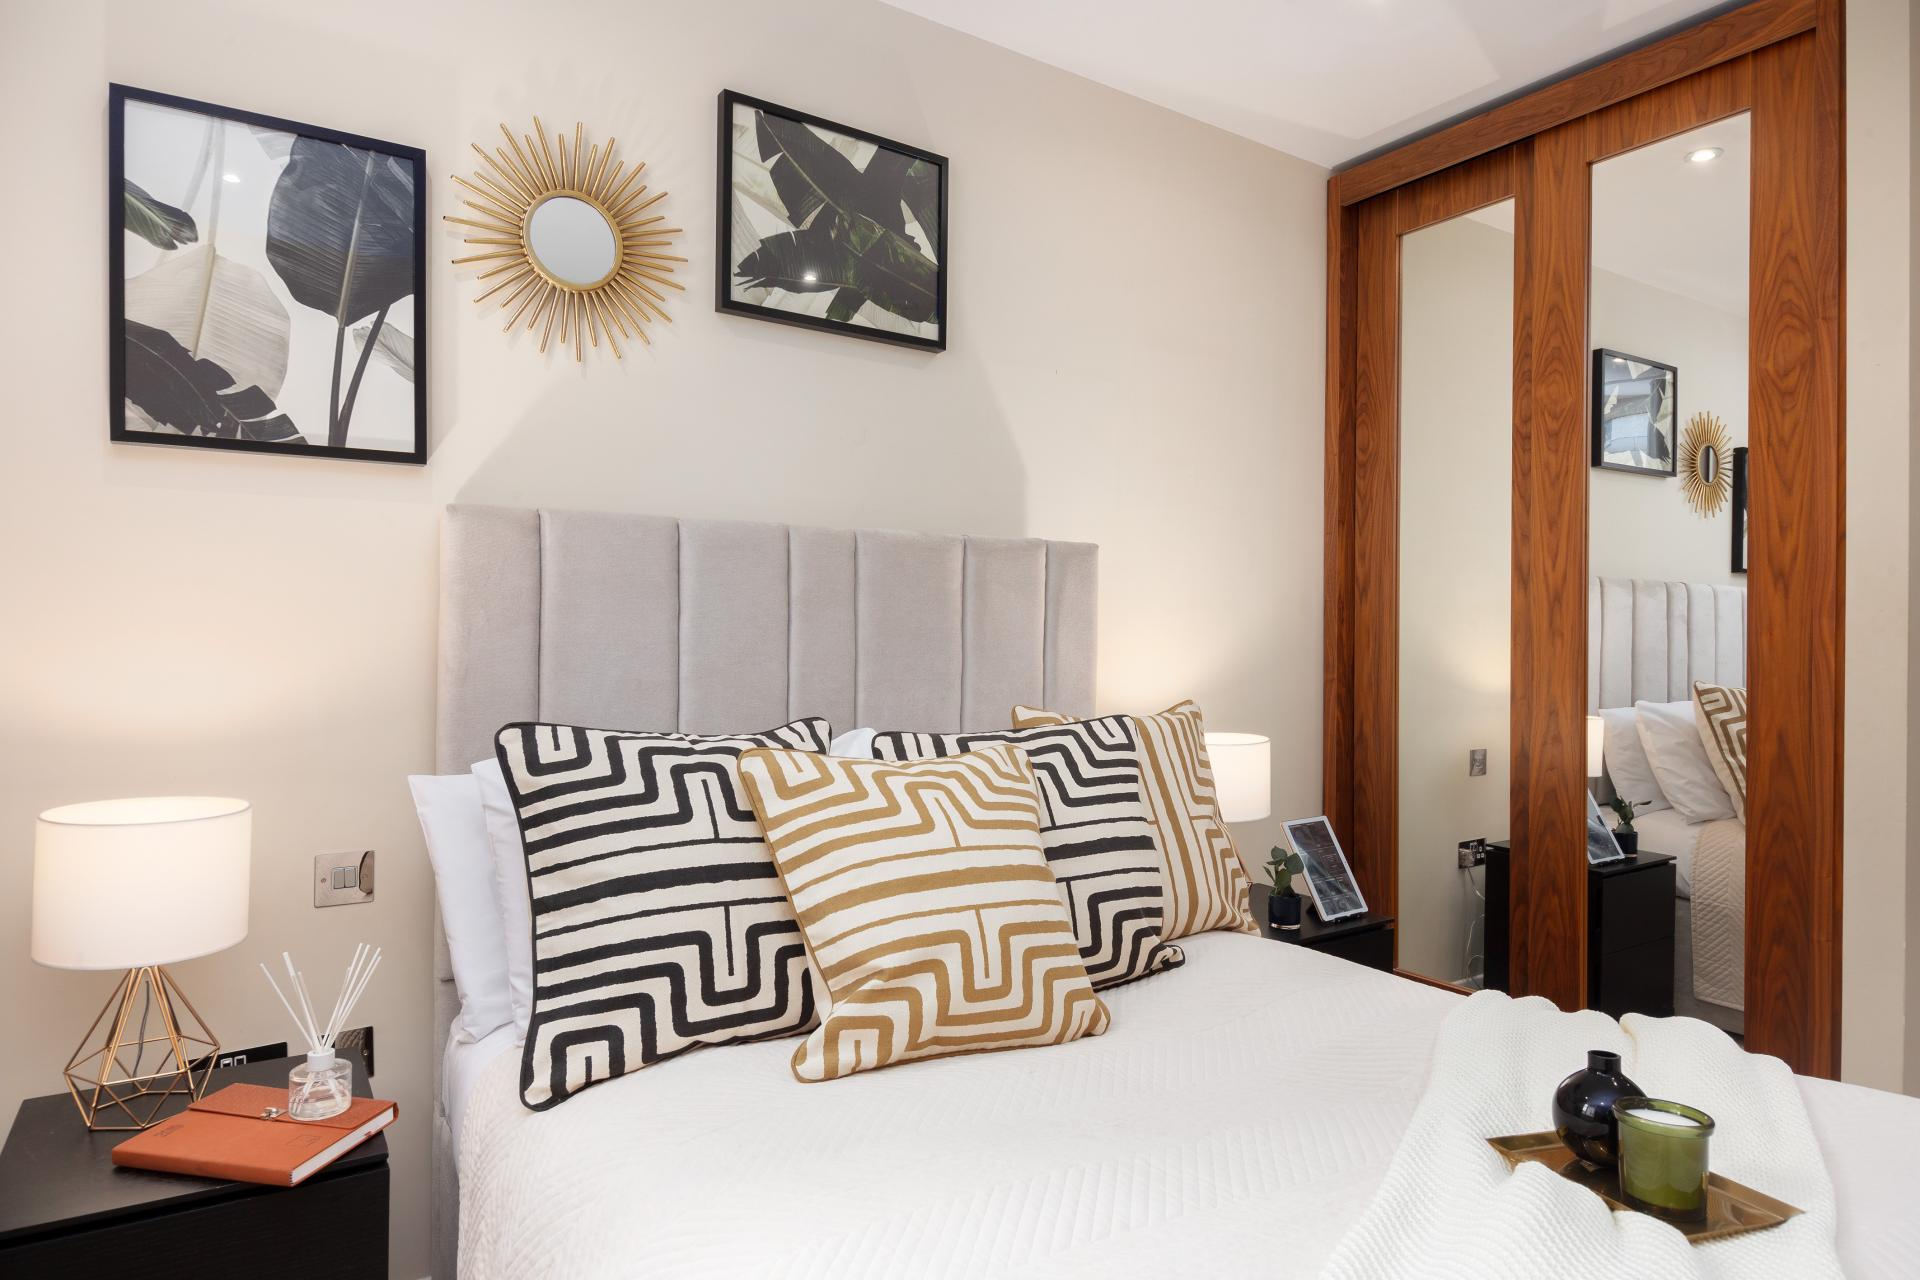 Art at Chancery Lane Apartment, Chancery Lane, London - Citybase Apartments